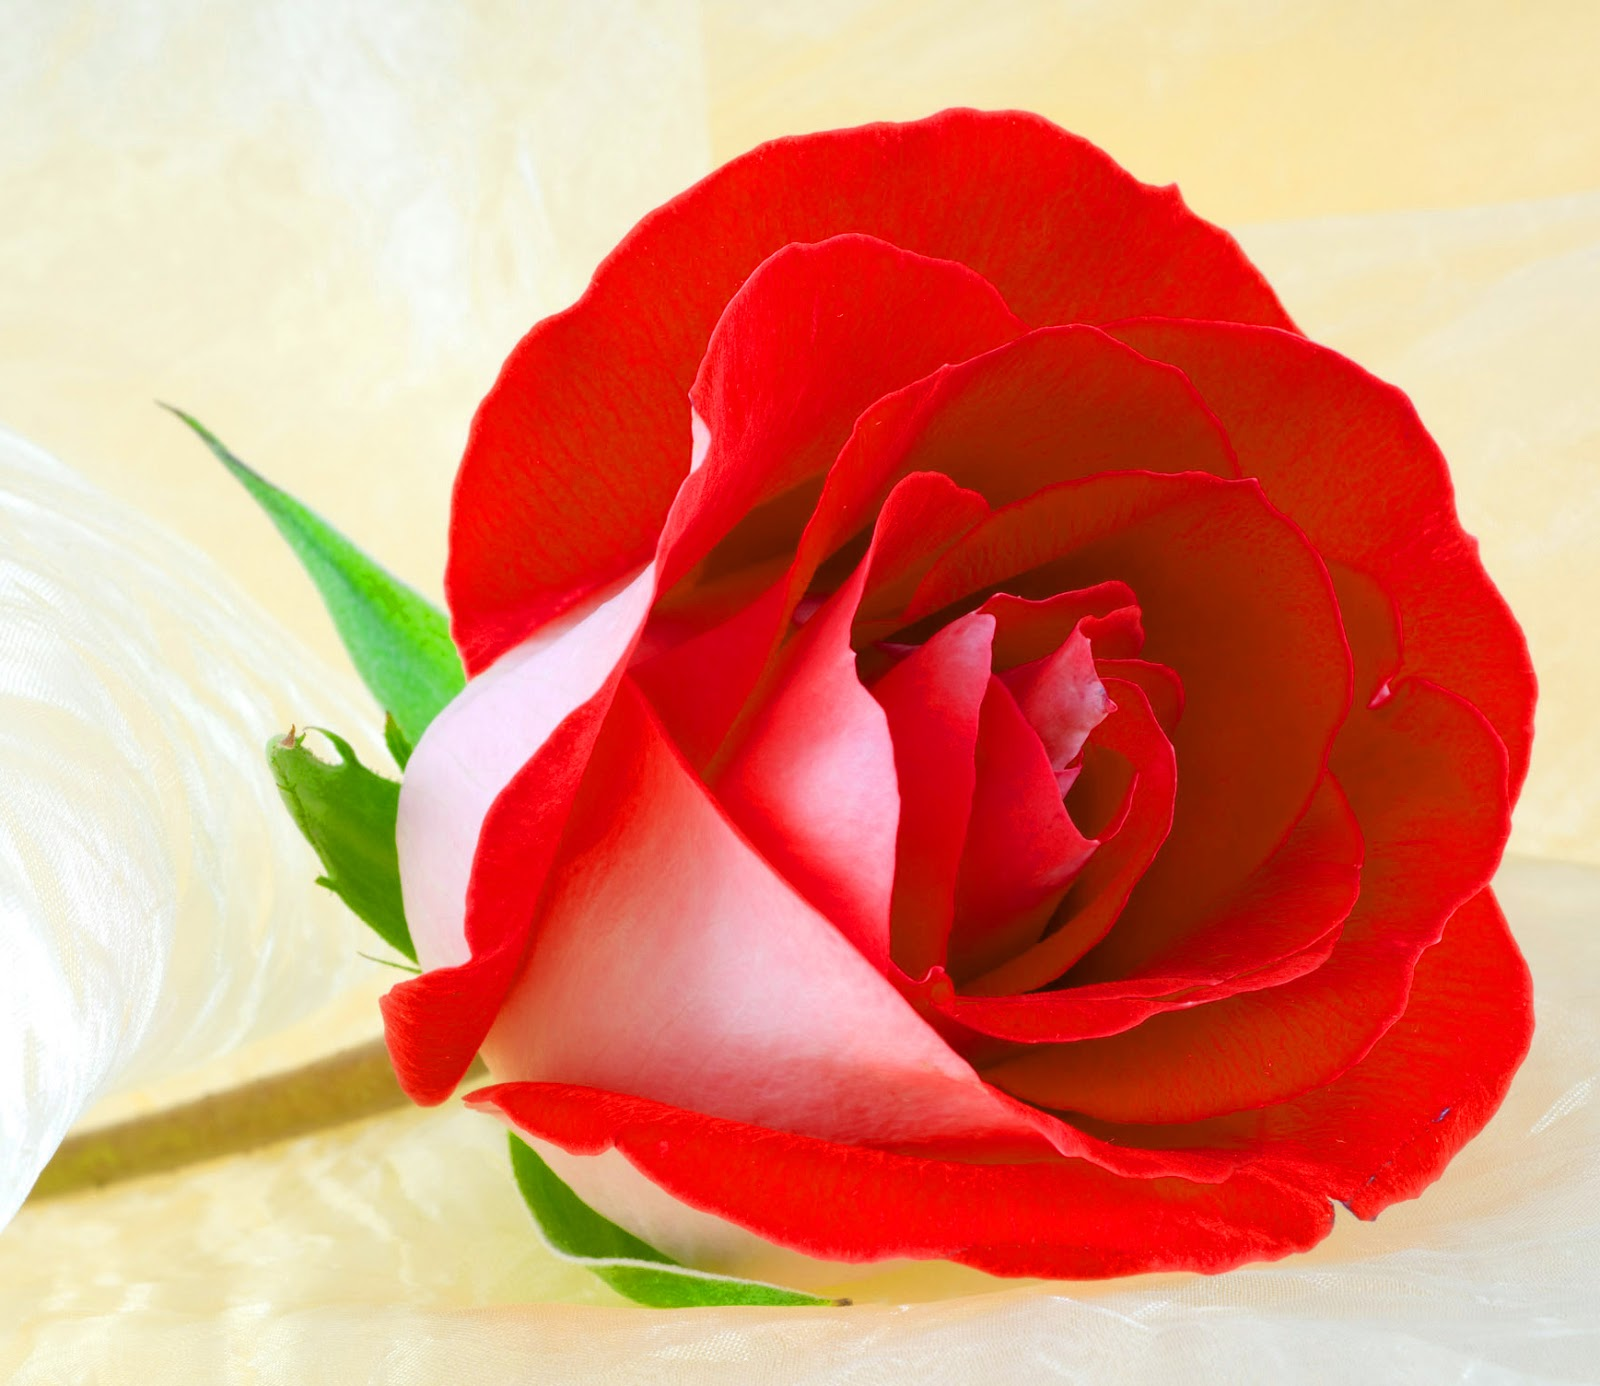 Rose Flowers Dp For Whatsapp Free Download Fresh